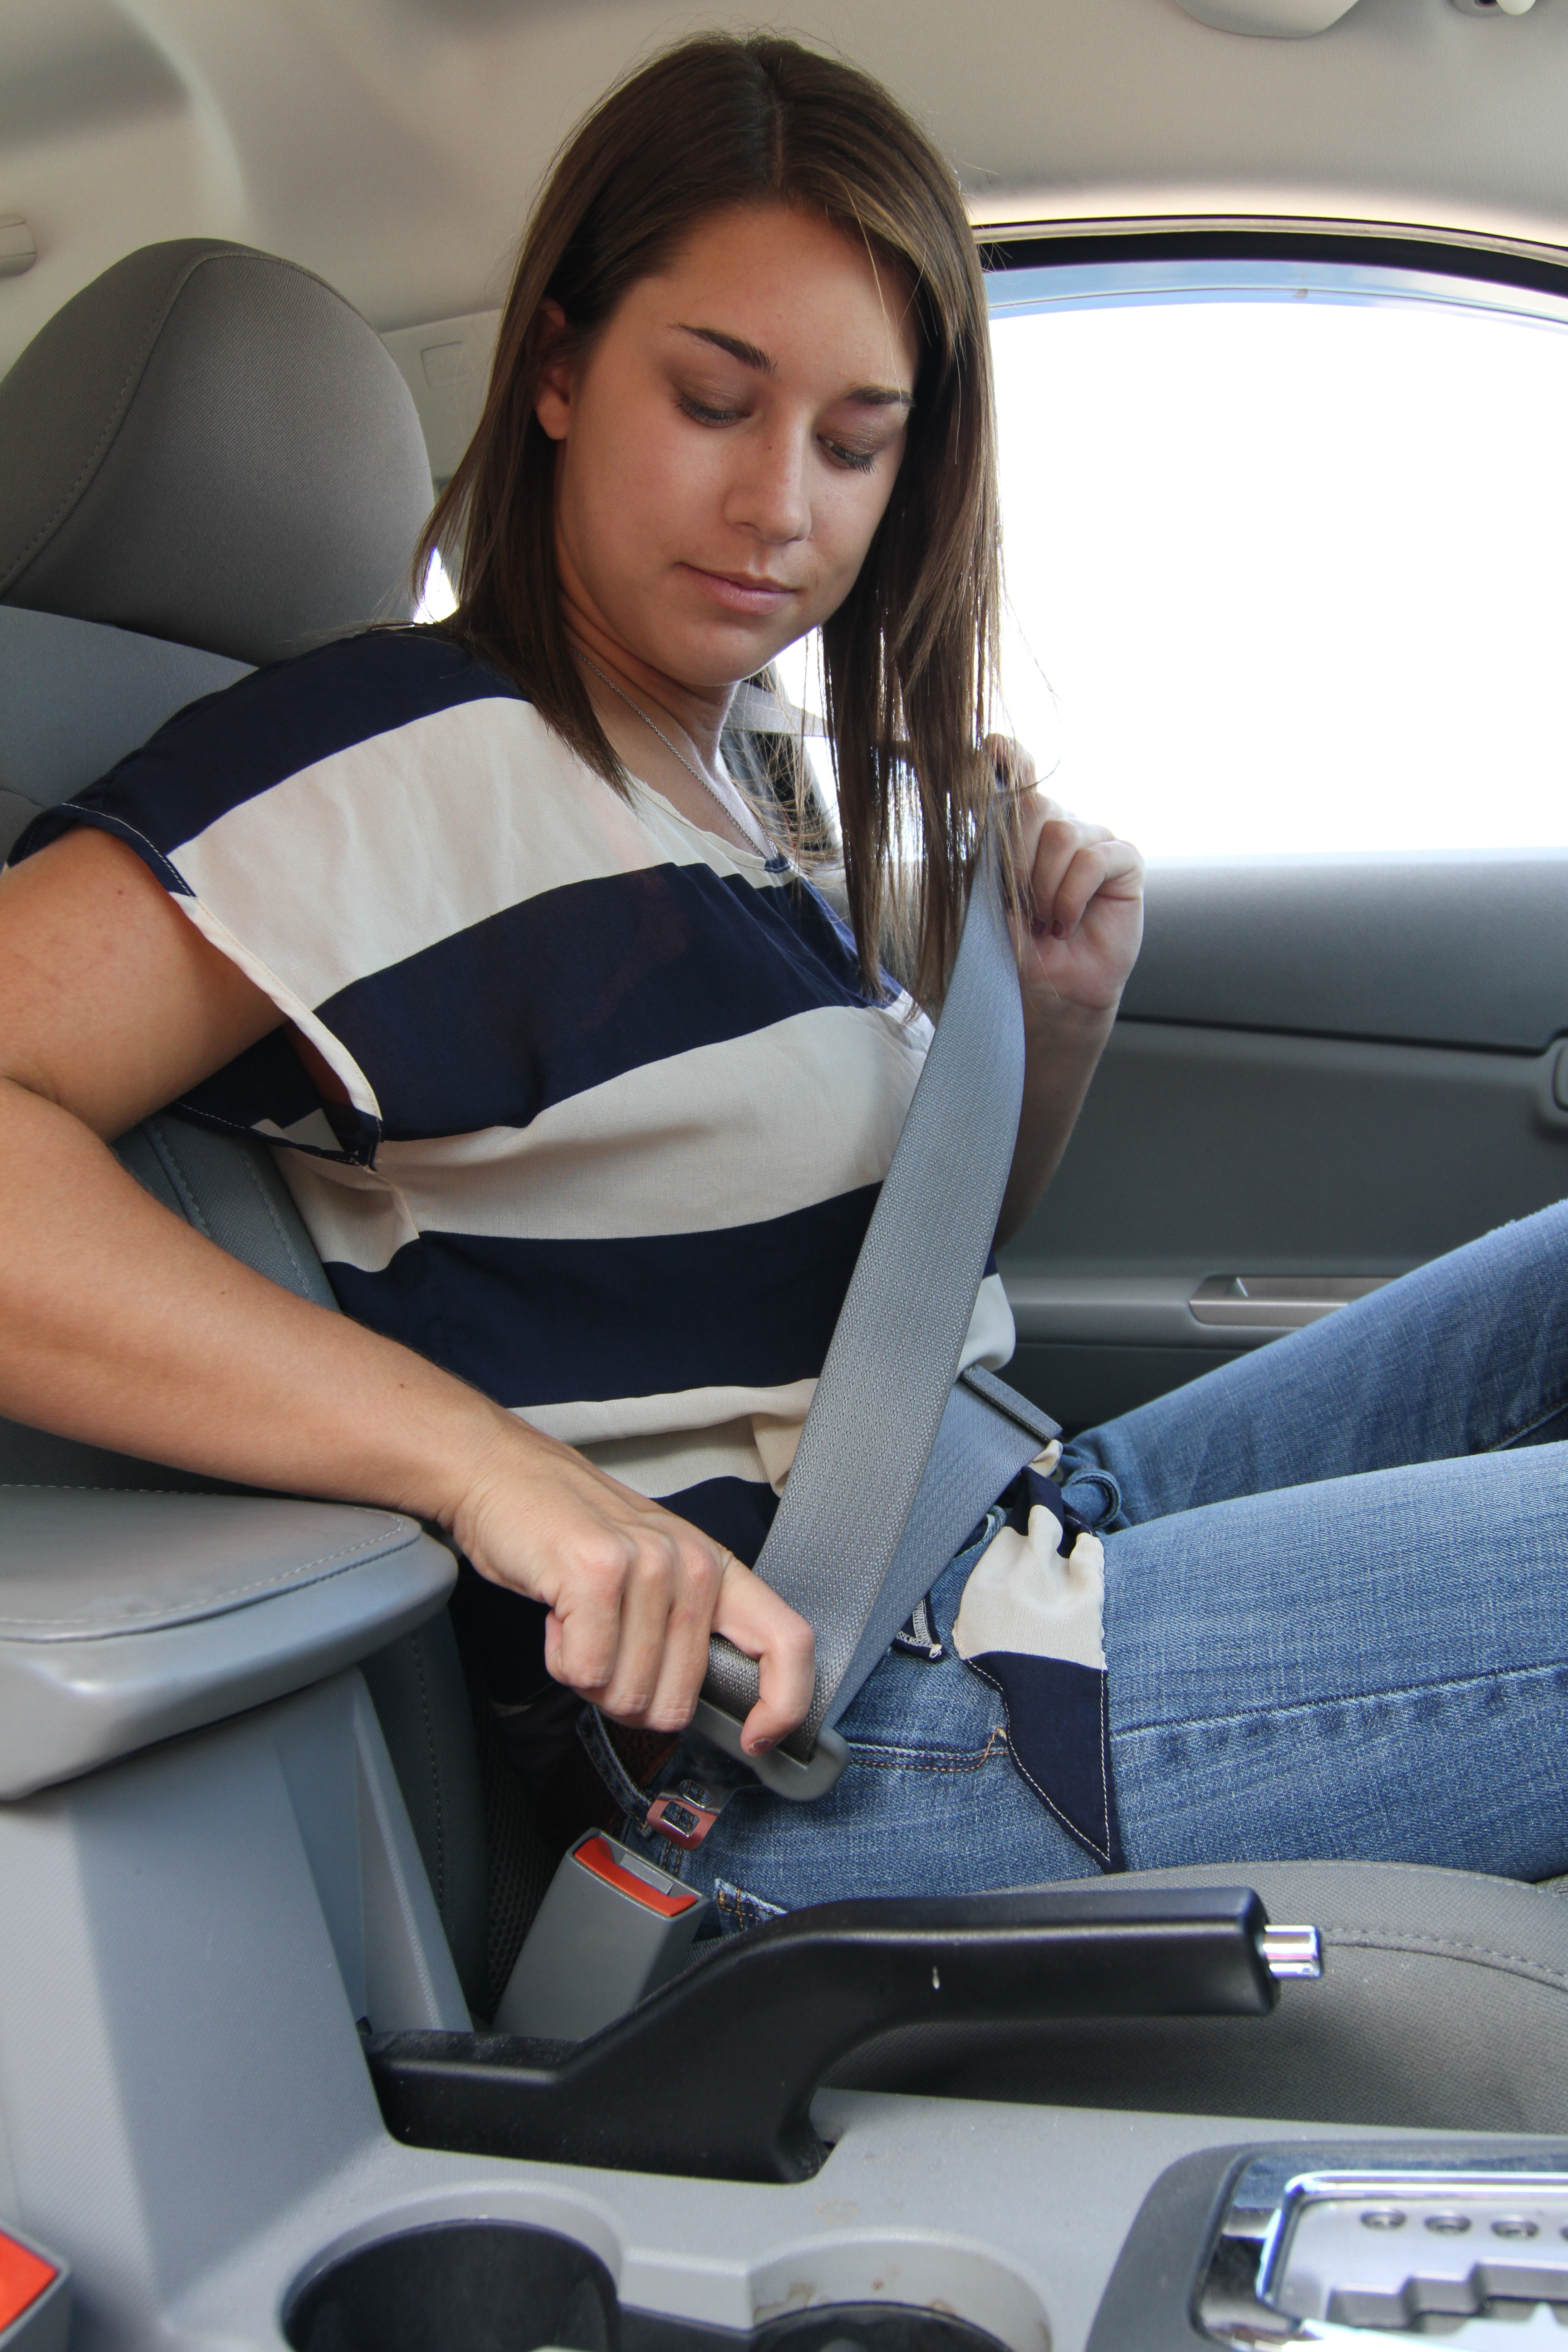 seat belt harness girl  seat  get free image about wiring